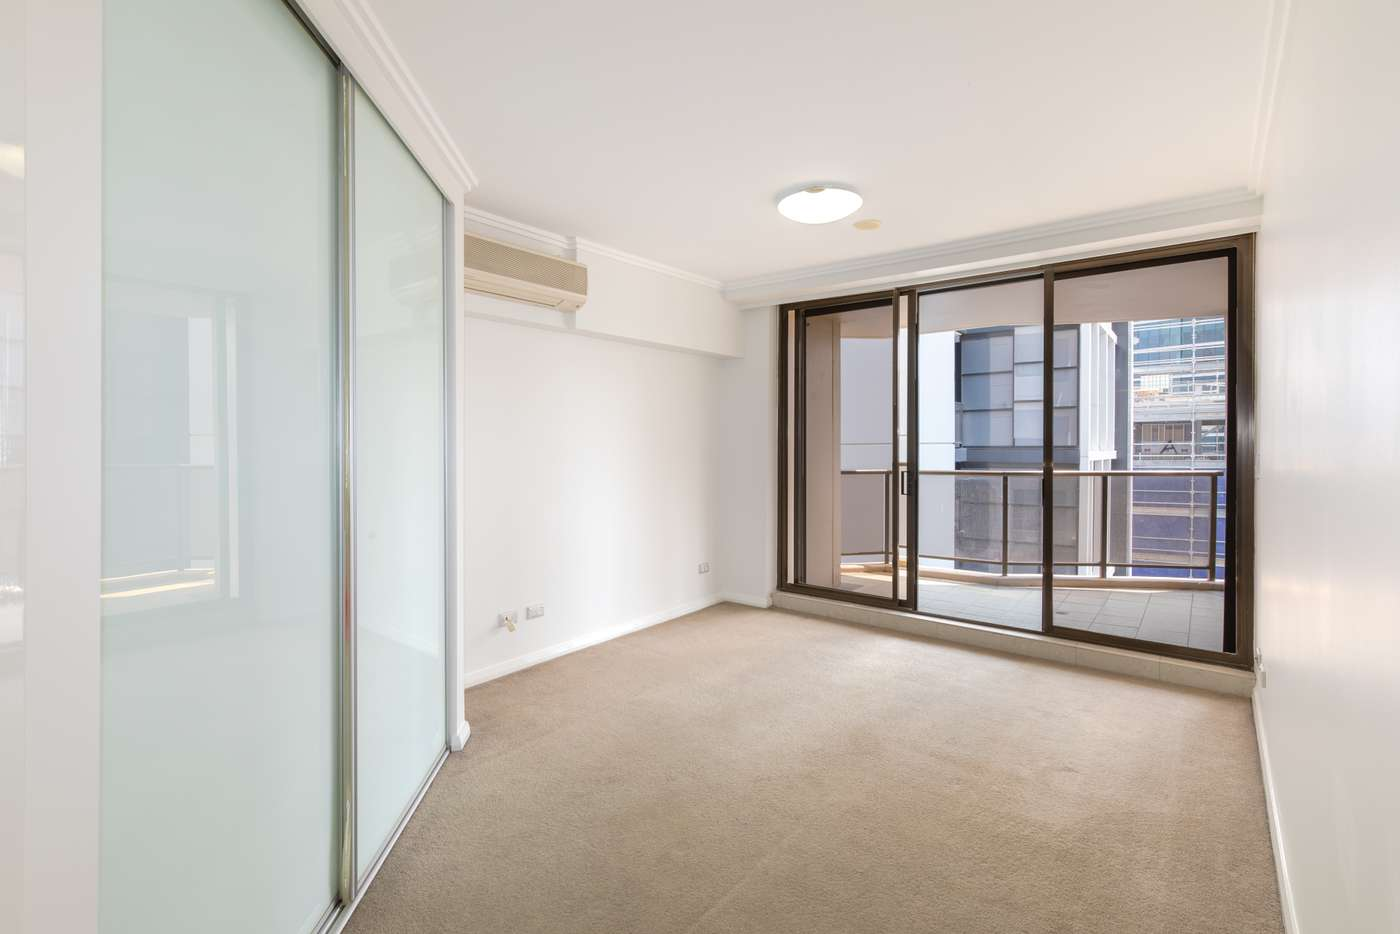 Sixth view of Homely apartment listing, 204/13 - 15 Hassall Street, Parramatta NSW 2150